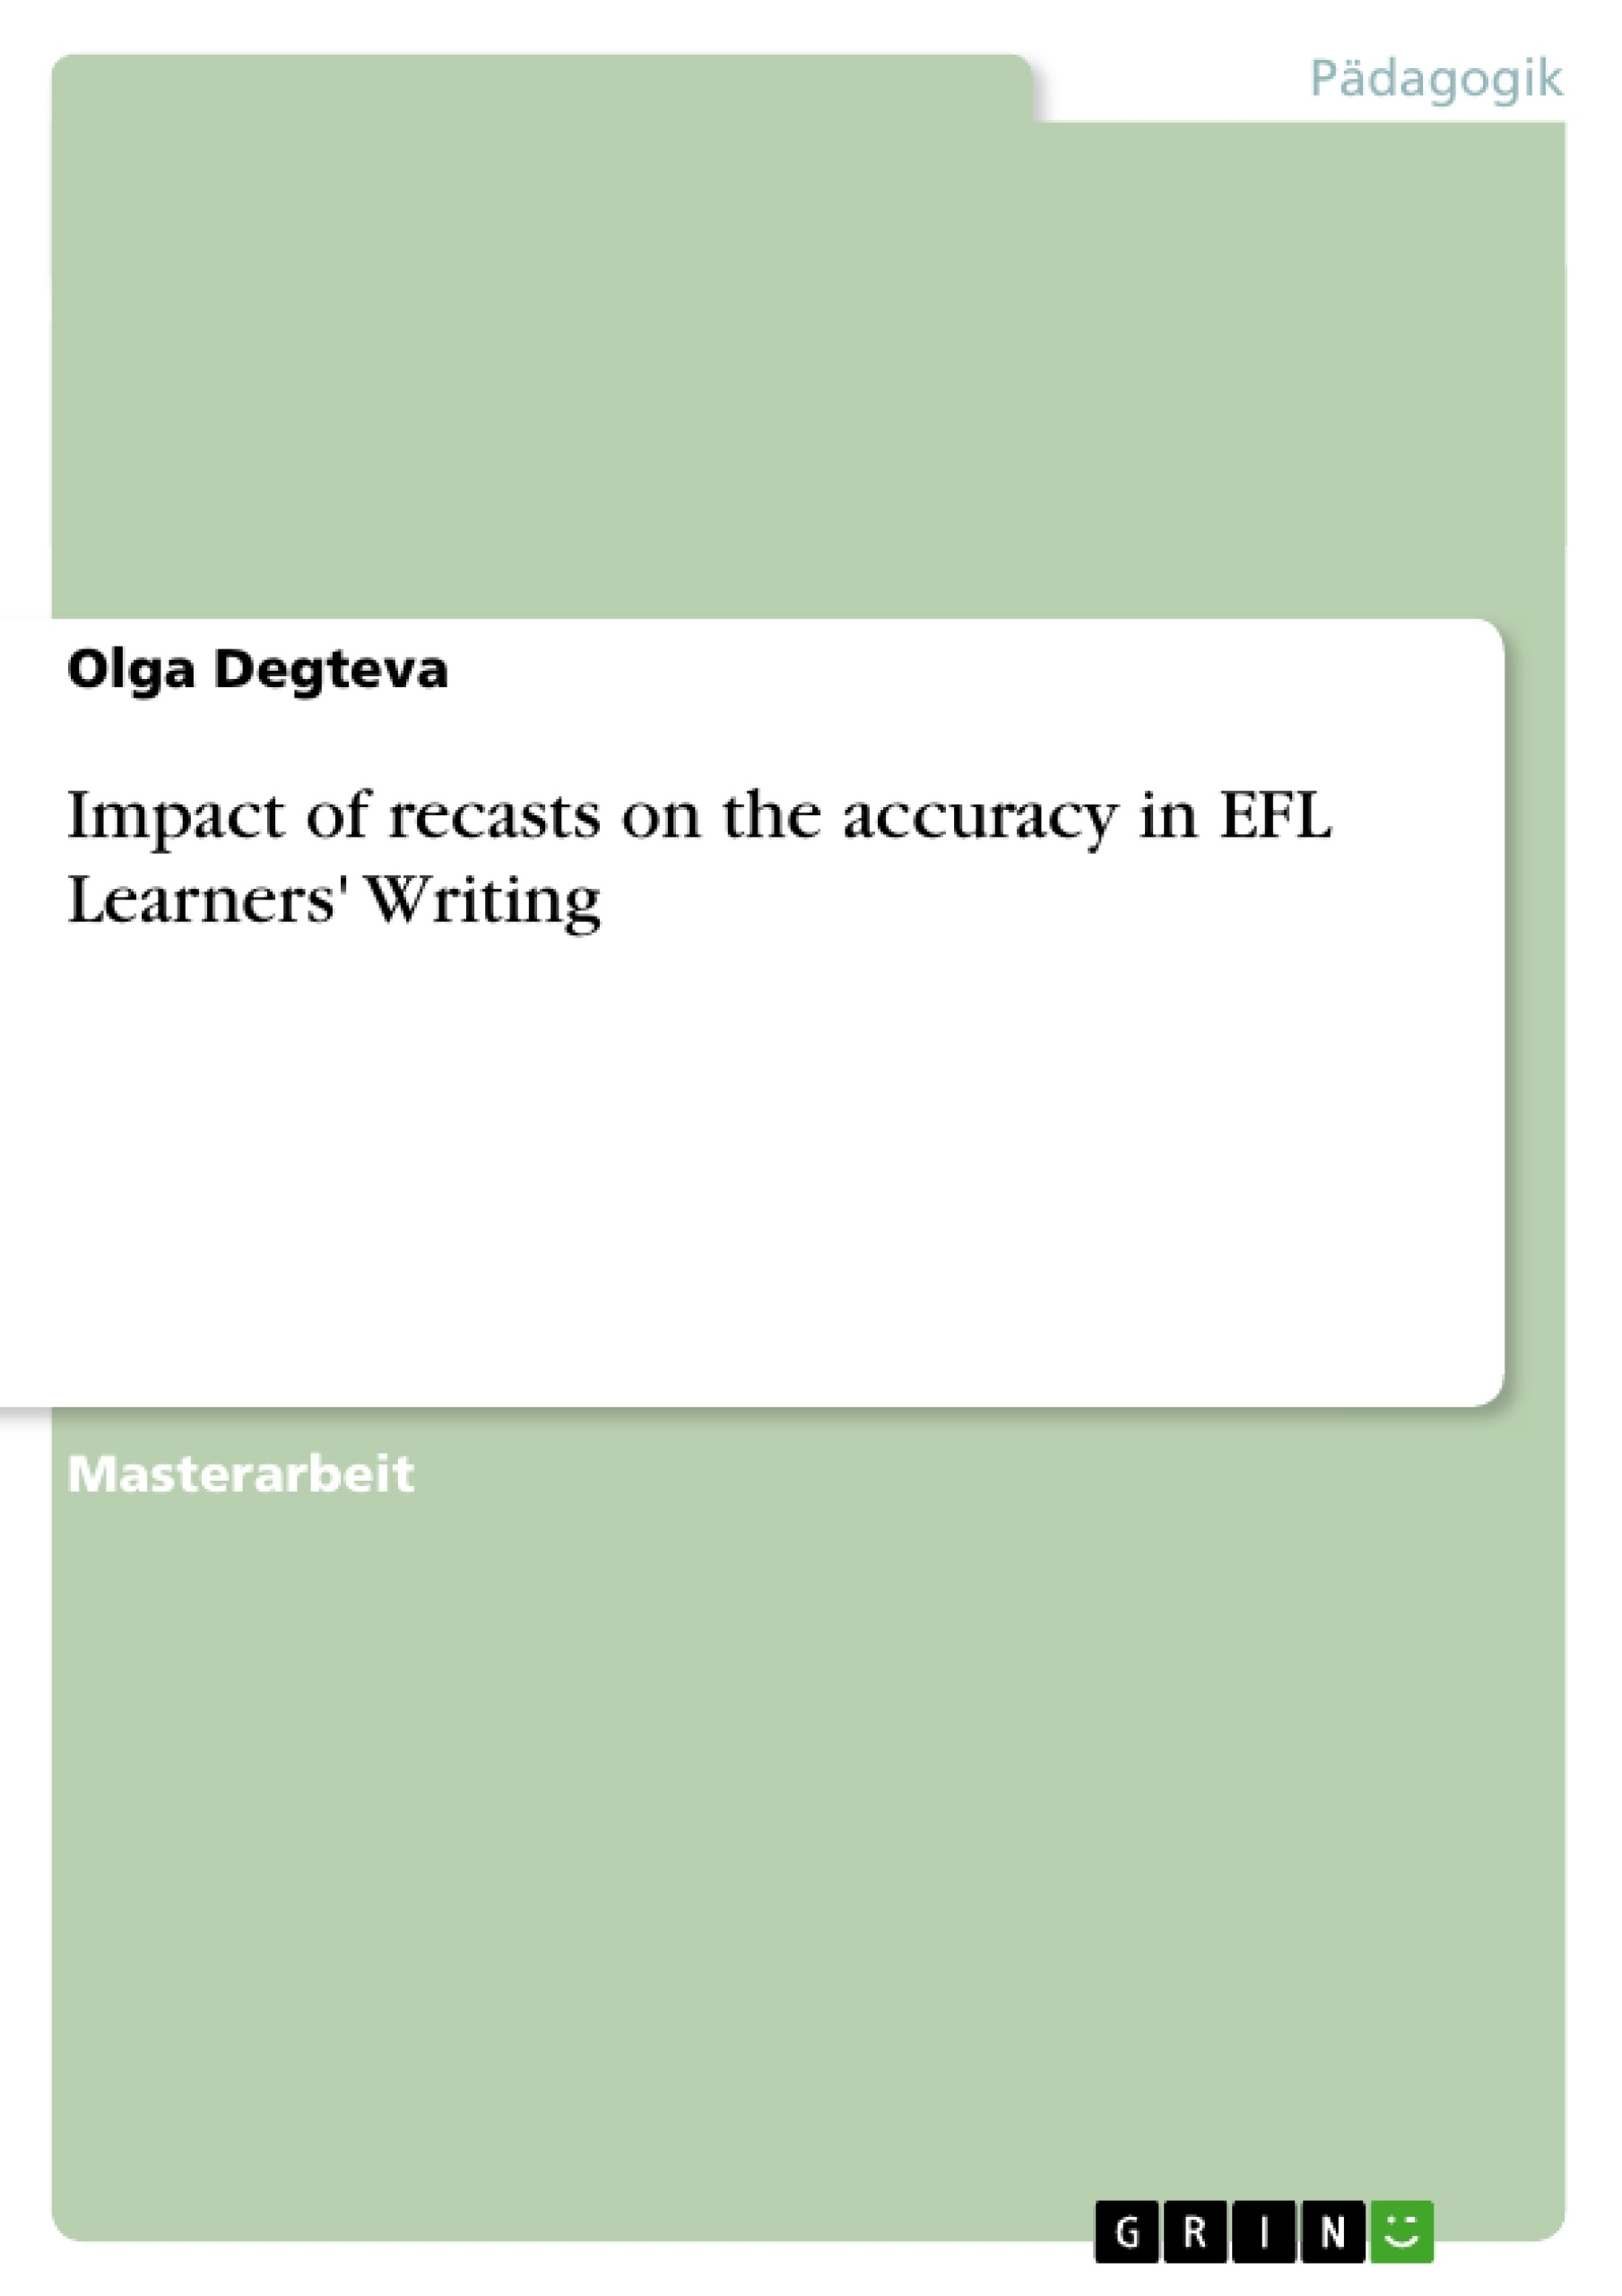 Titel: Impact of recasts on the accuracy in EFL Learners' Writing